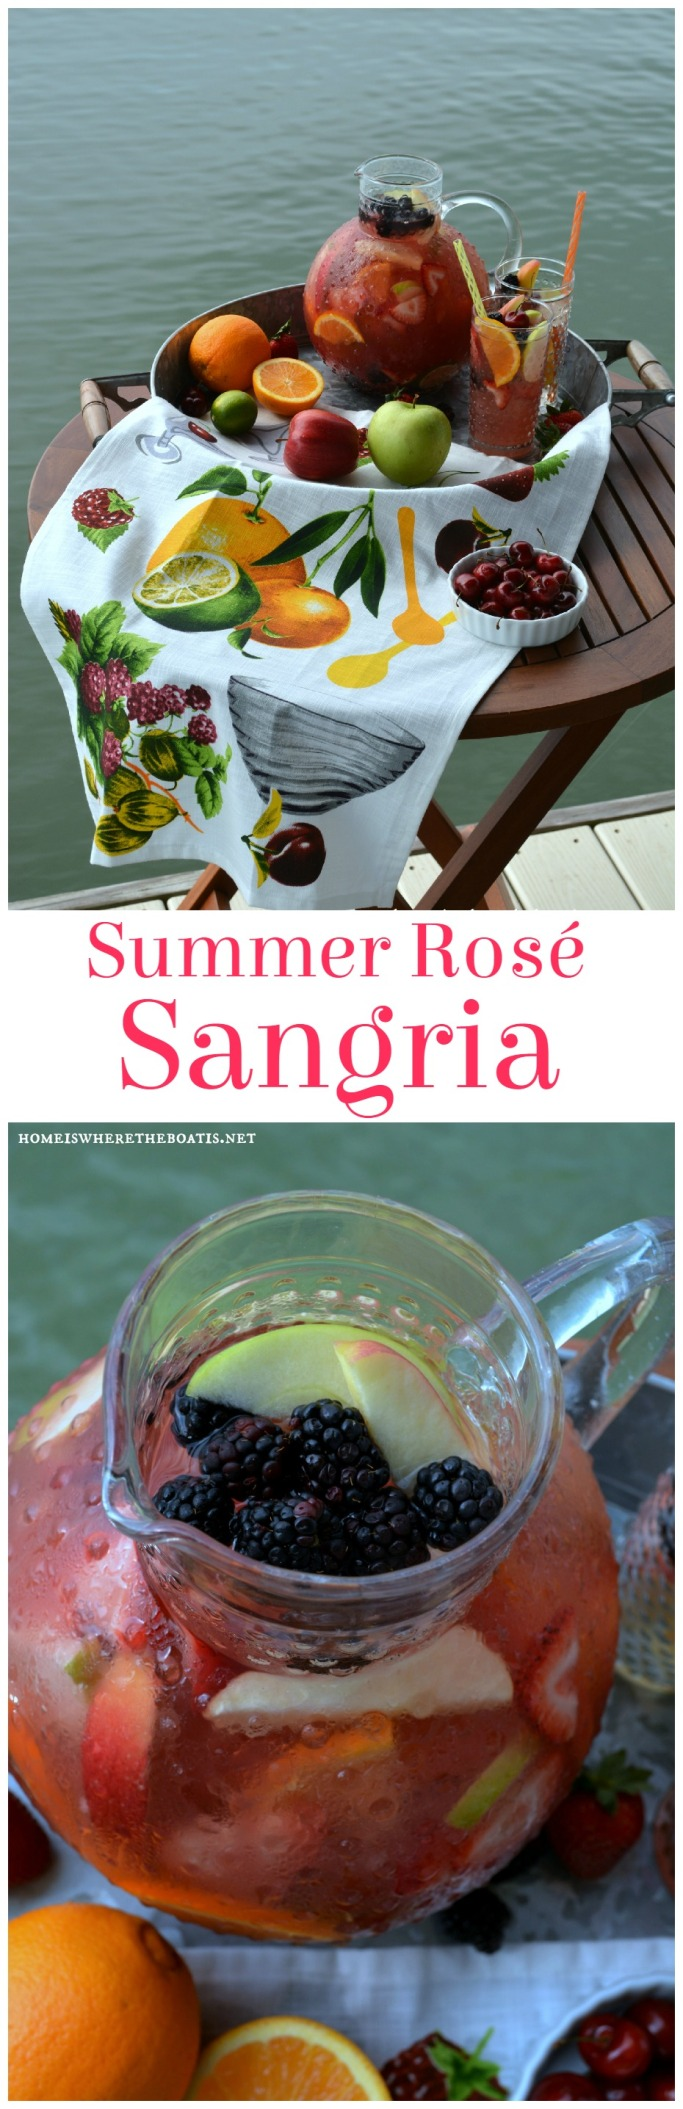 Summer Rose Sangria